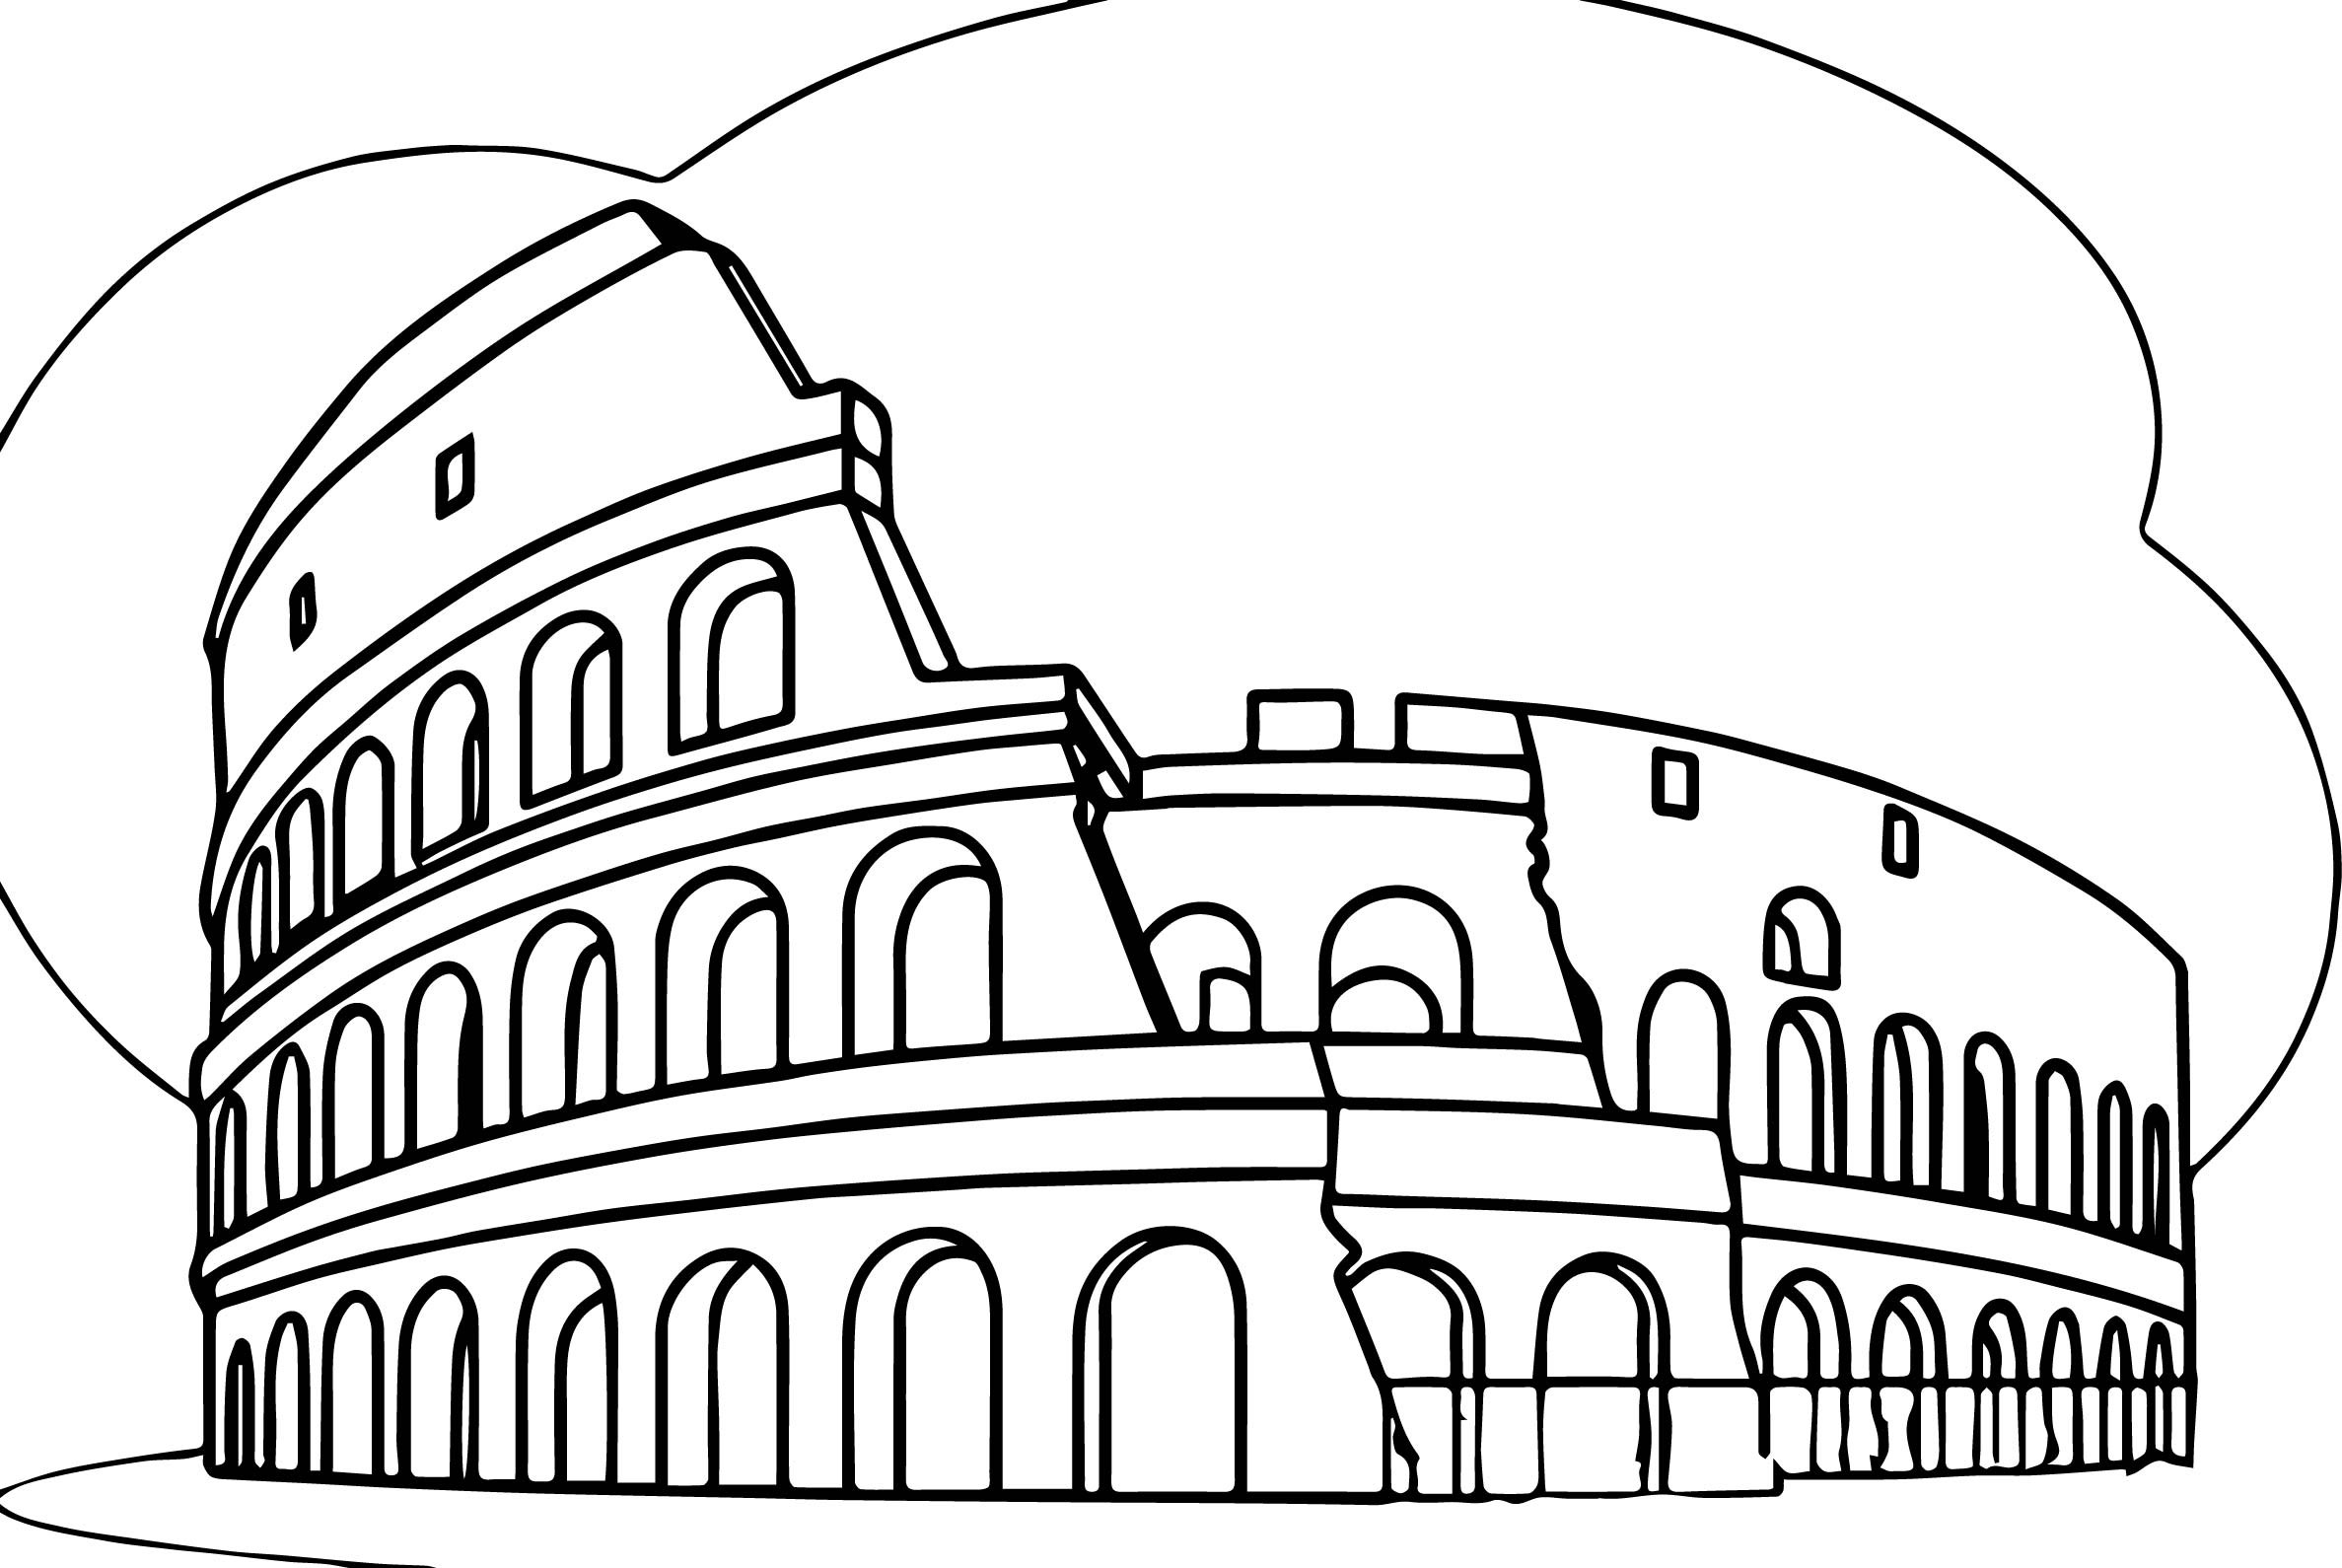 Colosseum Coloring Page At Getdrawings